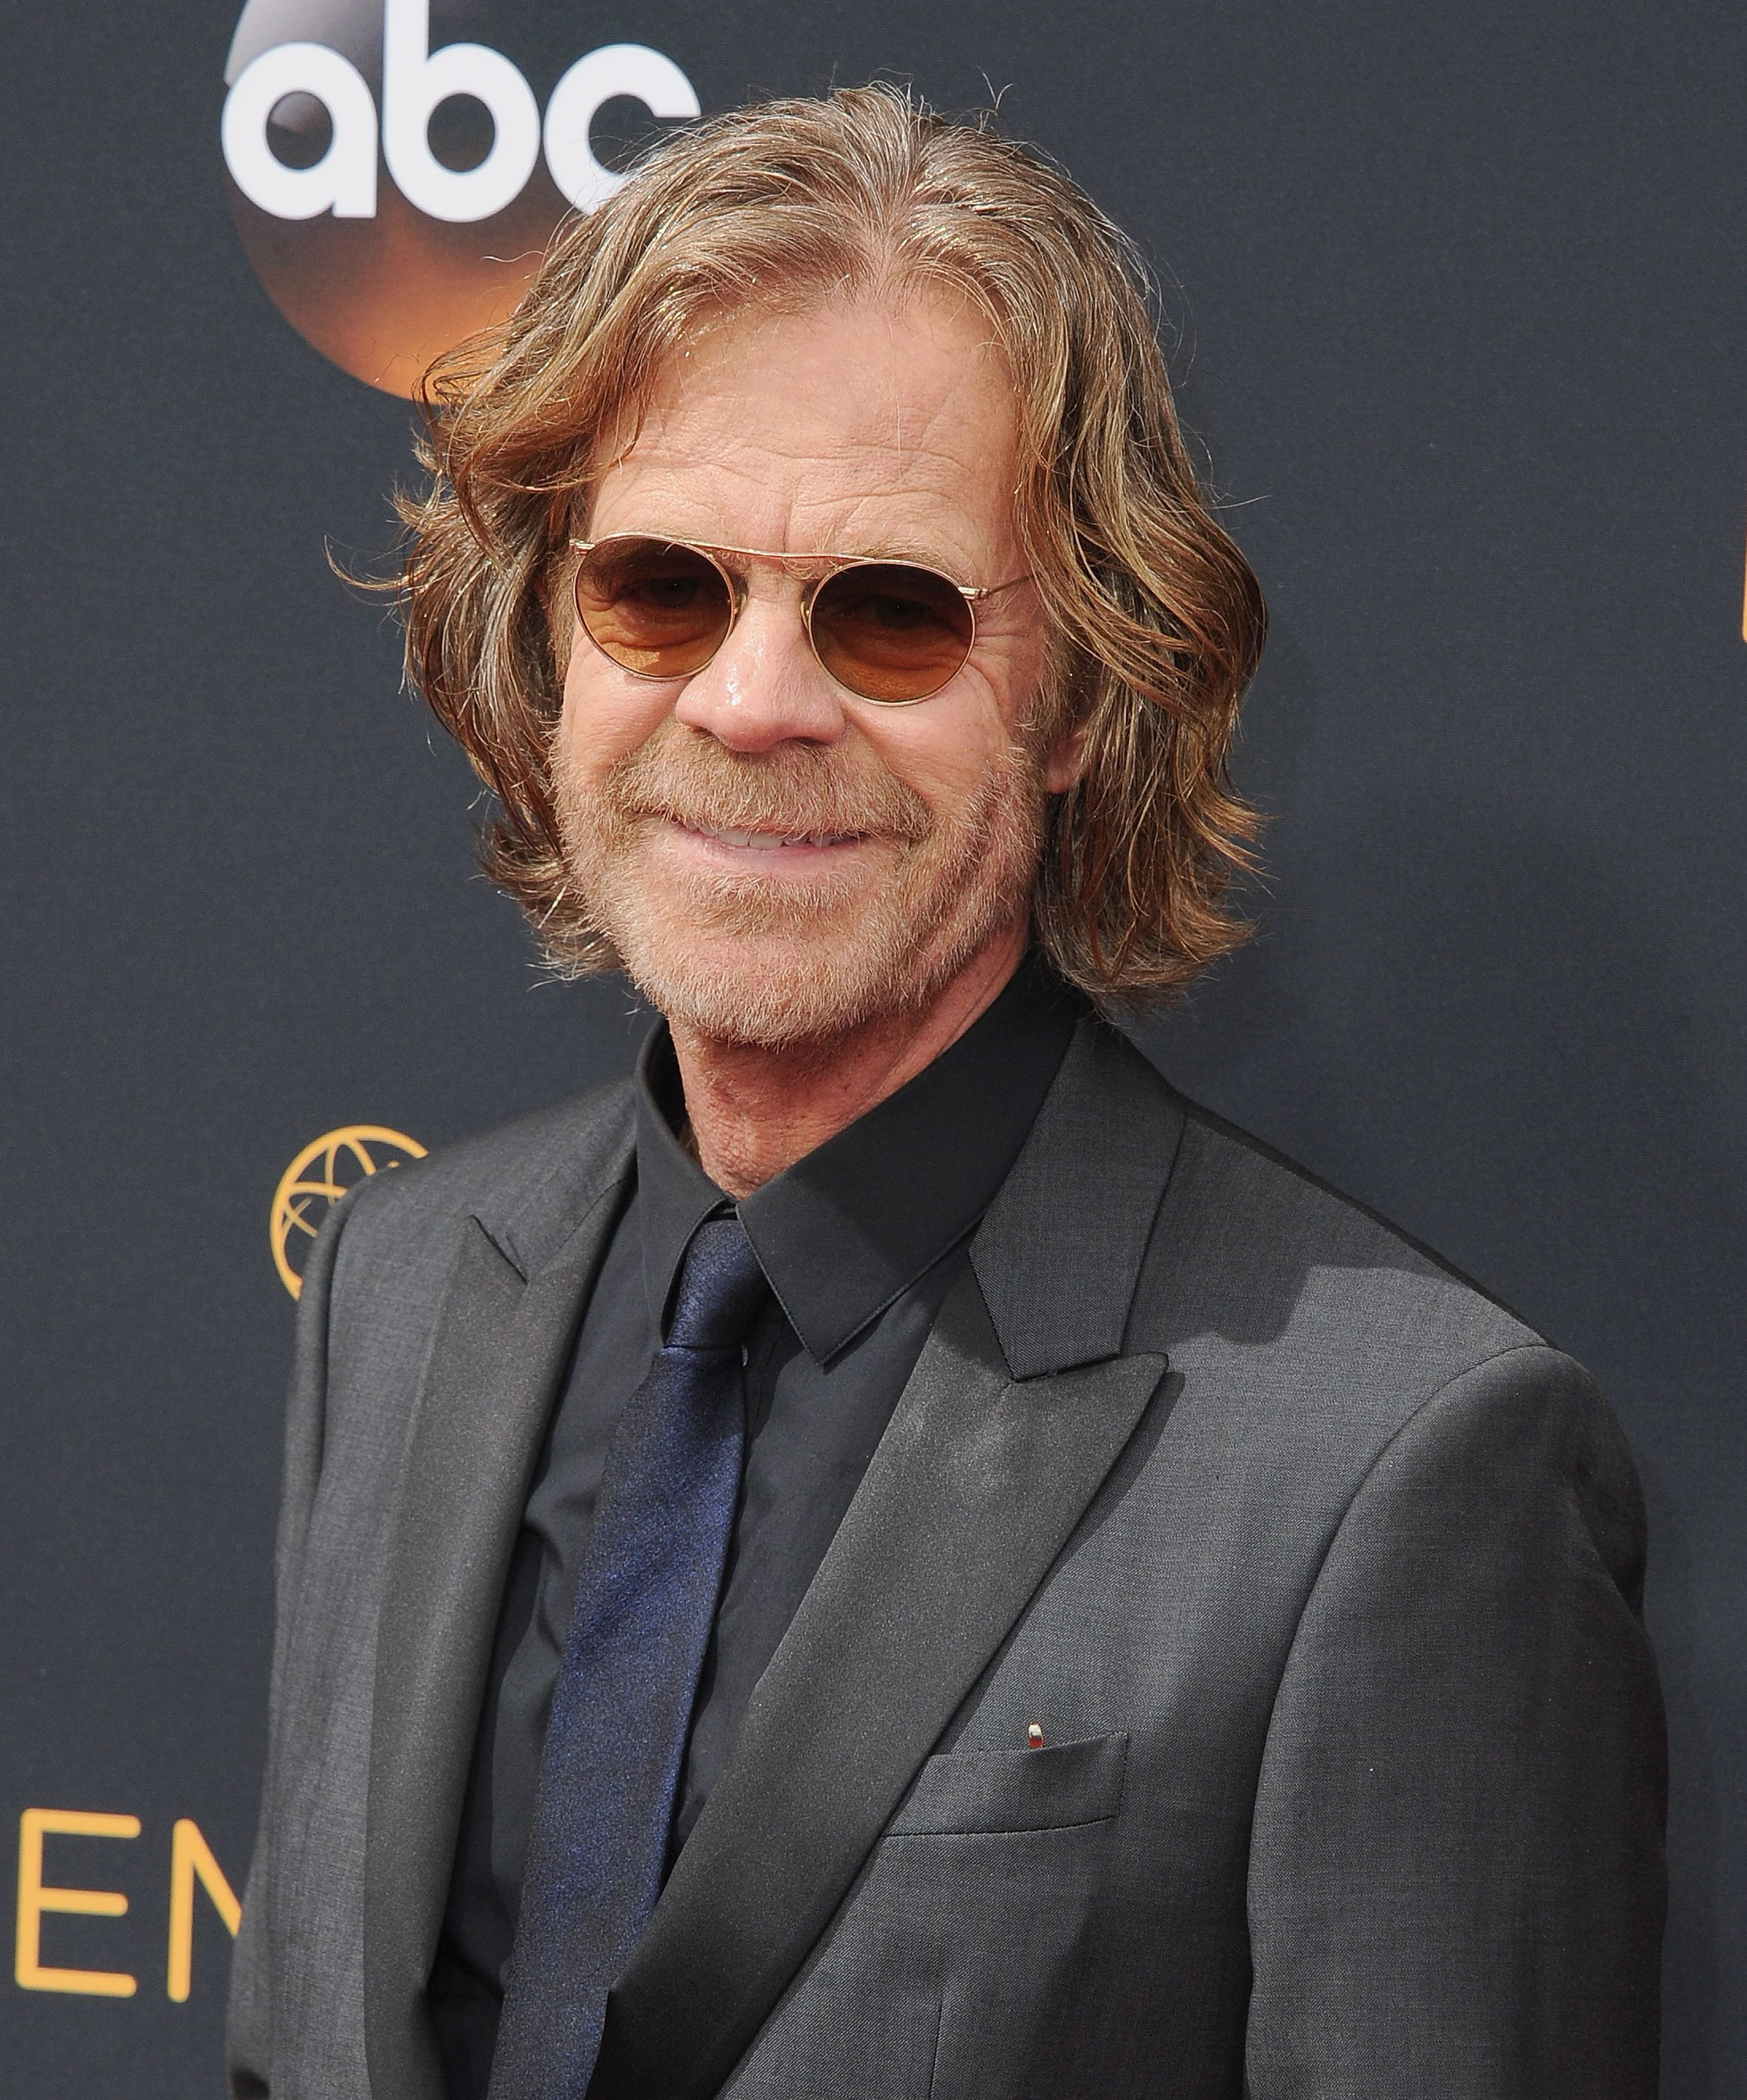 LOS ANGELES, CA - SEPTEMBER 18:  Actor William H. Macy arrives at the 68th Annual Primetime Emmy Awards at Microsoft Theater on September 18, 2016 in Los Angeles, California.  (Photo by Jon Kopaloff/FilmMagic)